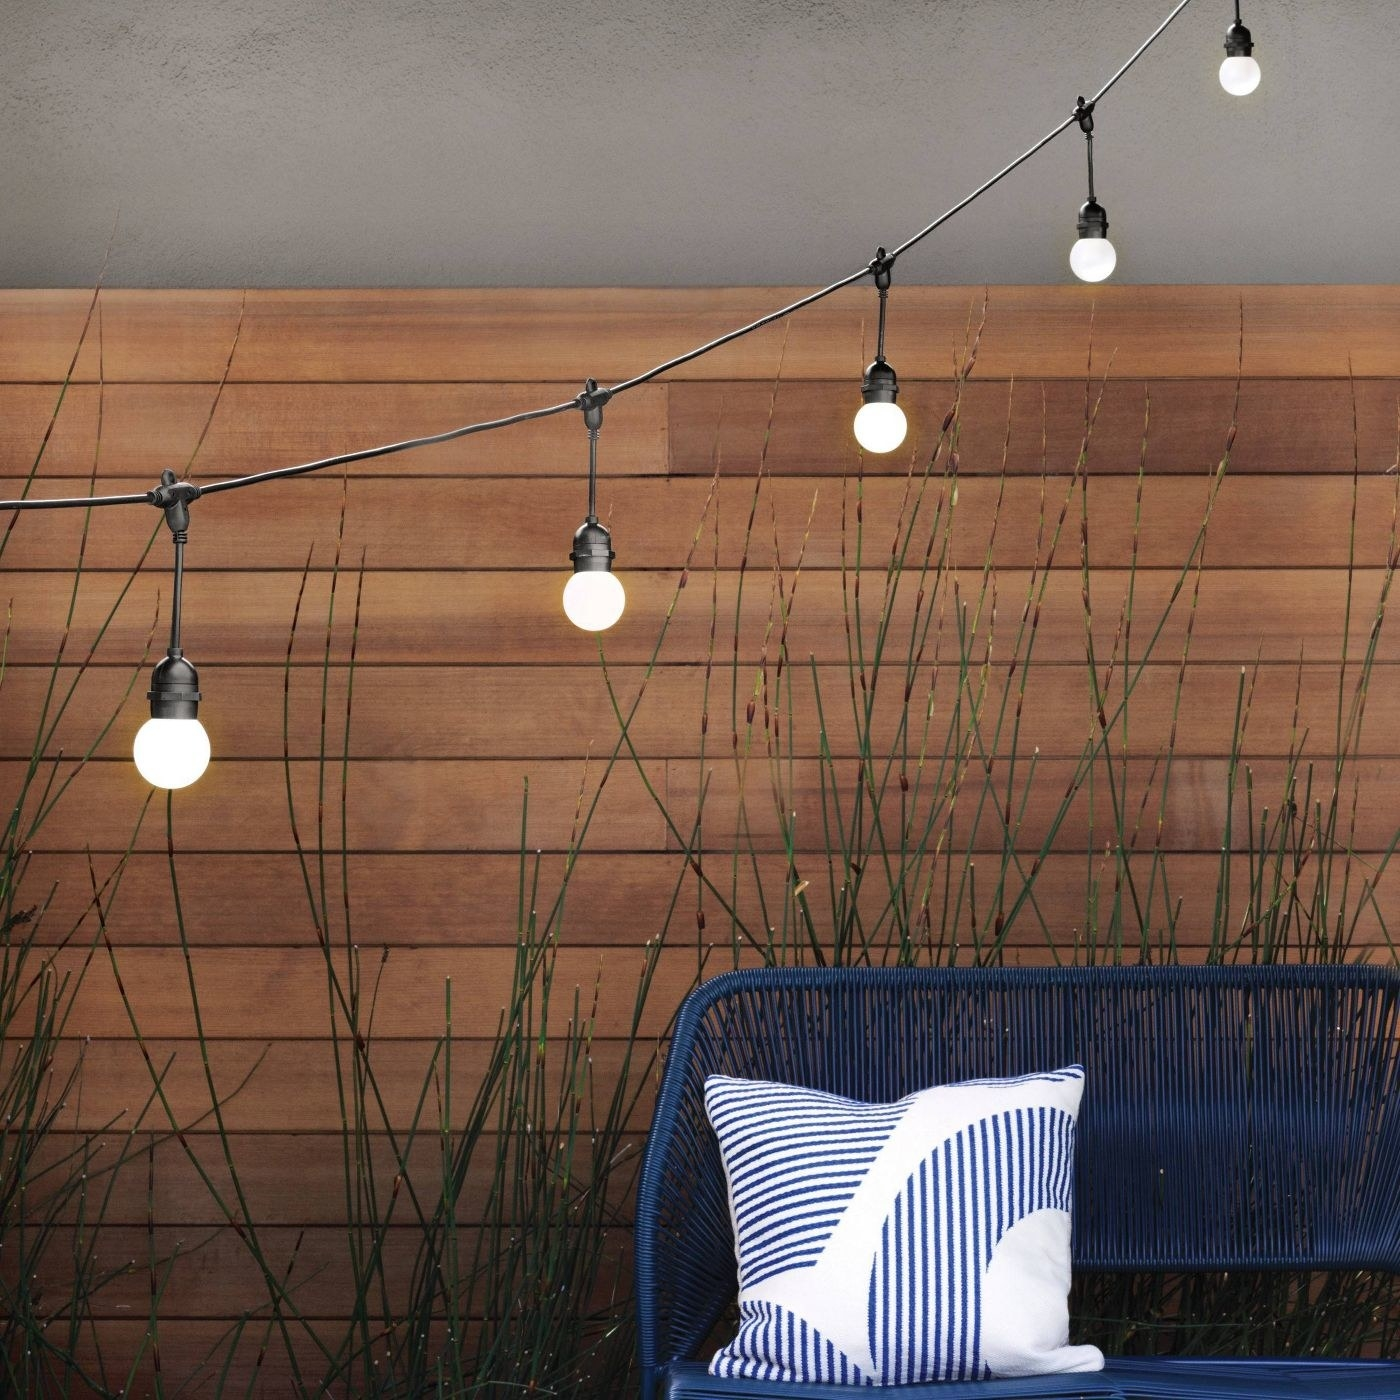 A string of round light bulbs hanging outdoors